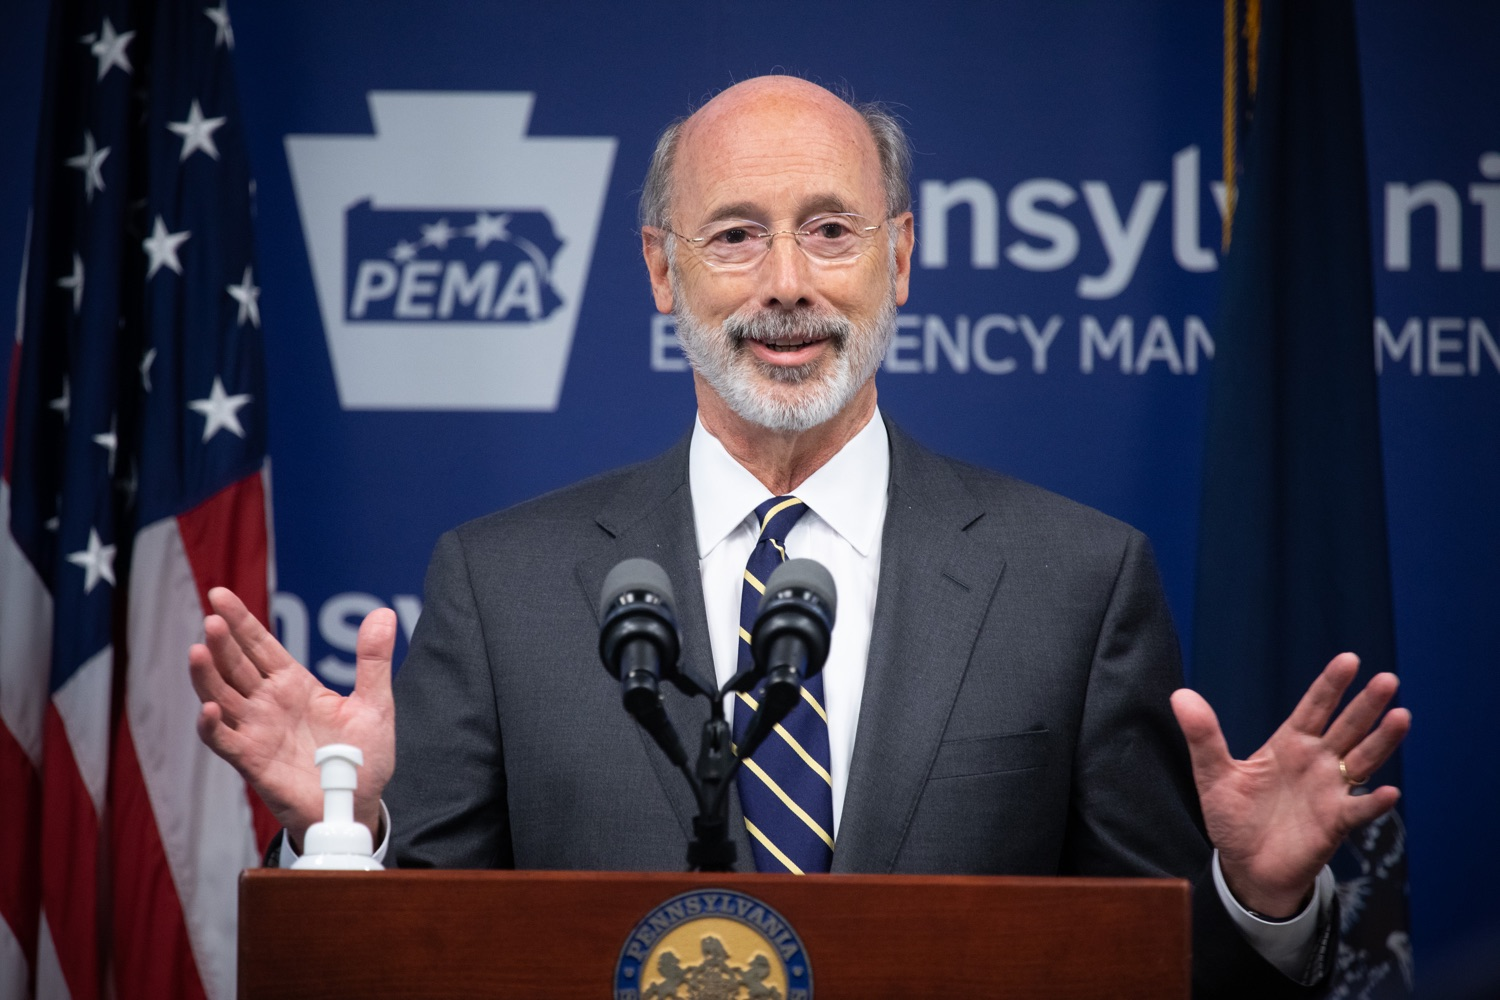 """<a href=""""https://filesource.wostreaming.net/commonwealthofpa/photo/18165_GOV_covid_mitigation_dz_16.jpg"""" target=""""_blank"""">⇣Download Photo<br></a>Pennsylvania Governor Tom Wolf speaking with the press. Governor Tom Wolf and Sec. of Health Dr. Rachel Levine today signed new orders for targeted mitigation efforts in response to the recent rise in COVID cases, primarily in southwest Pennsylvania, but also in other counties in the state, influencing the decision for statewide mitigation efforts for bars and restaurants, gatherings and telework. The new orders take effect at 12:01 a.m., Thursday, July 16, 2020.  Harrisburg, - July 15, 2020"""